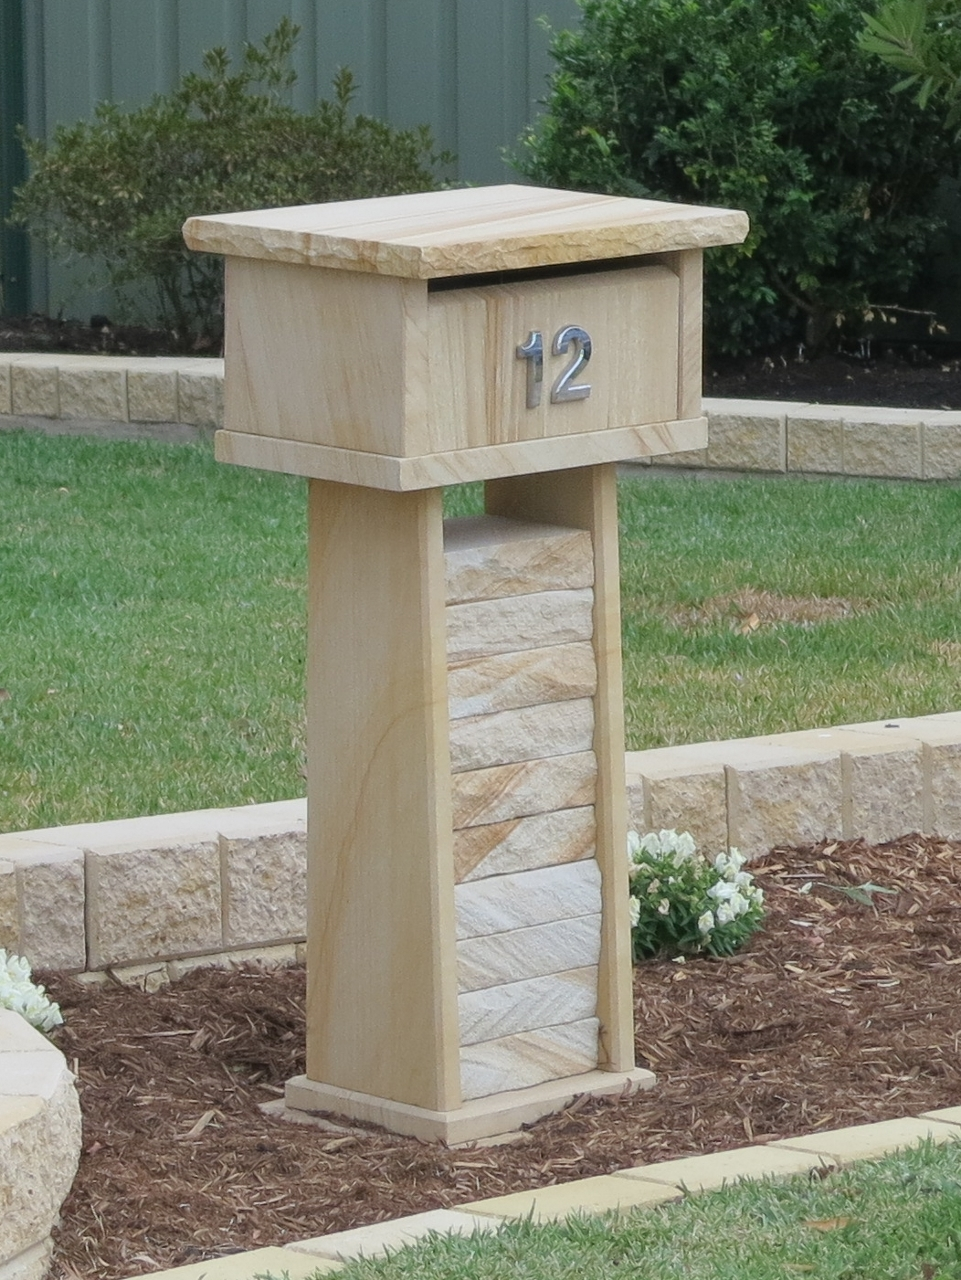 17. Sandstone letterbox 820 high 400x300 $700